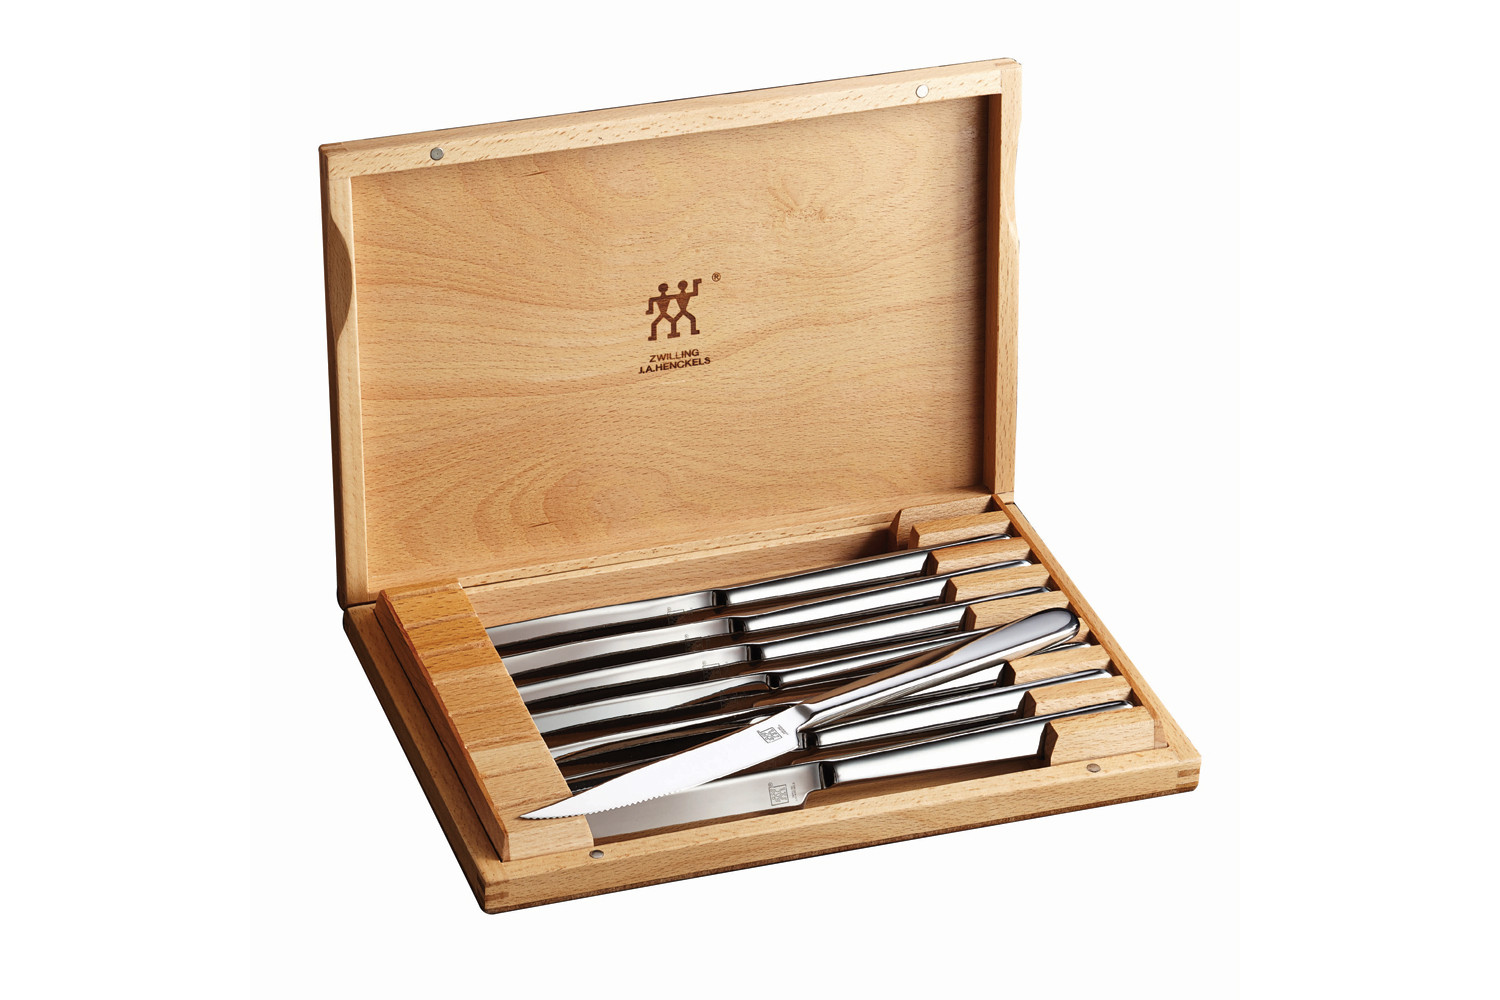 Zwilling Stainless Steel 8 Piece Steak Knife Promo Set